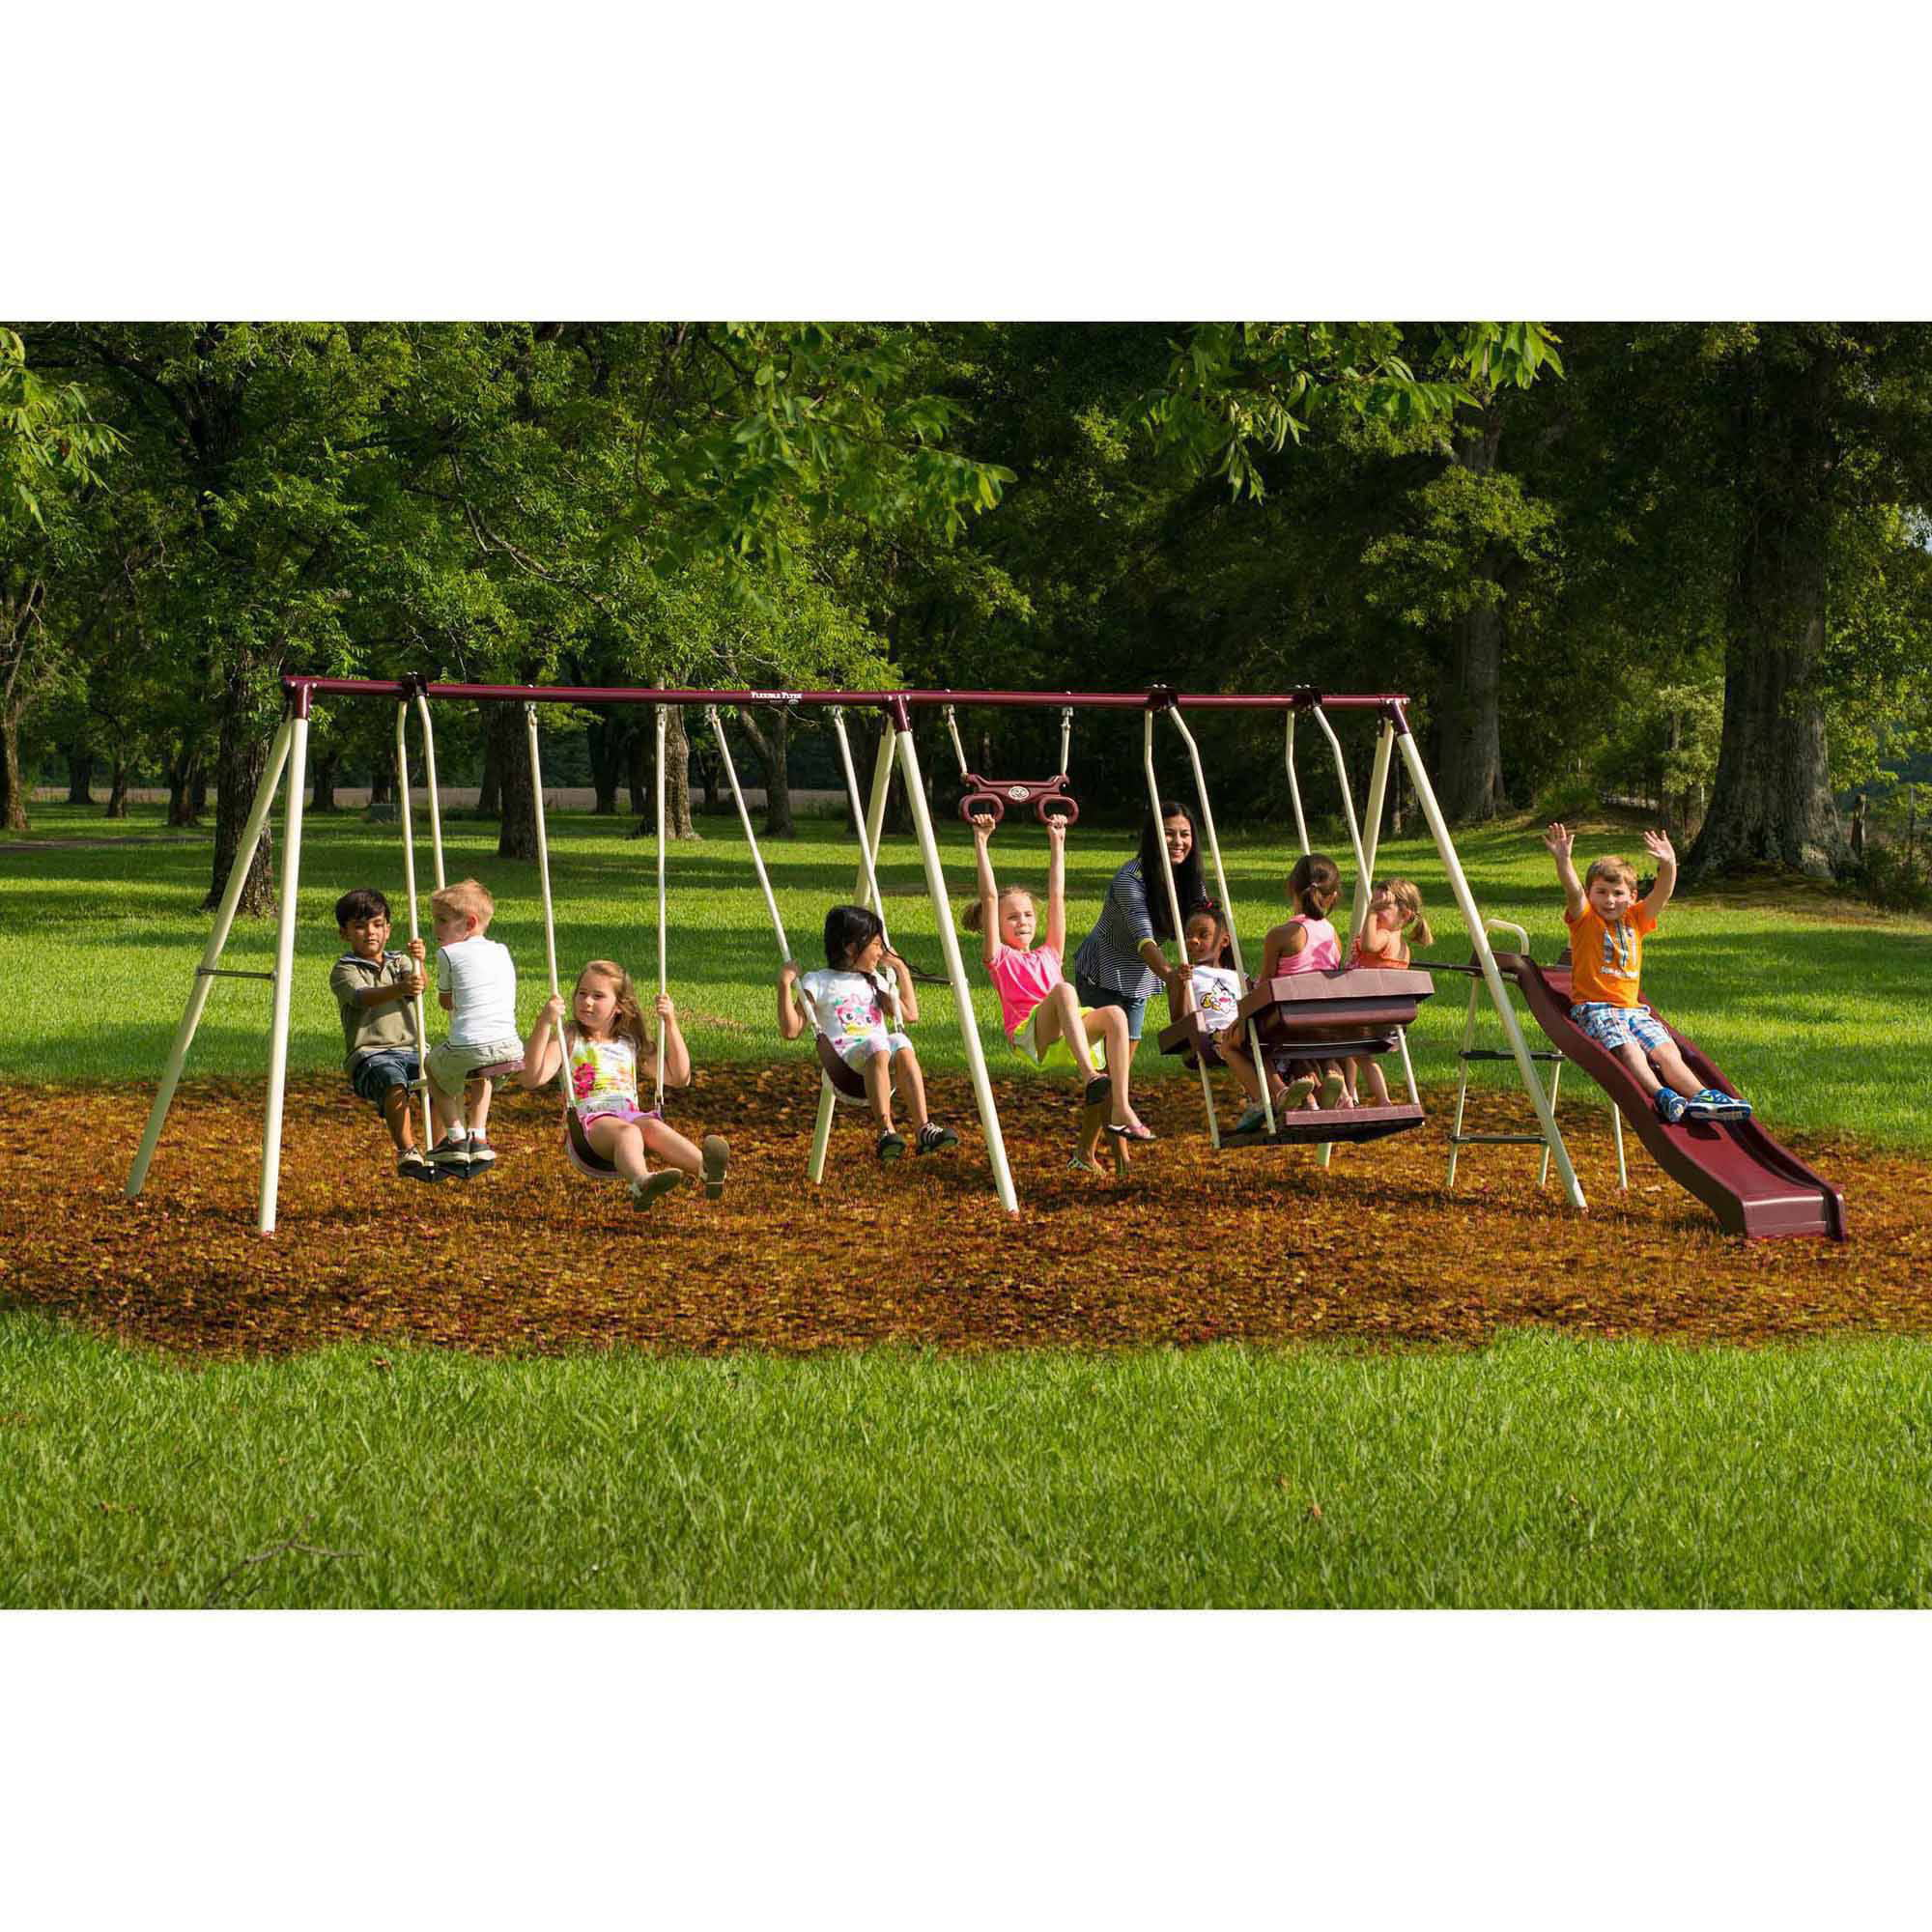 Flexible Flyer Play Park Metal Swing Set Walmart